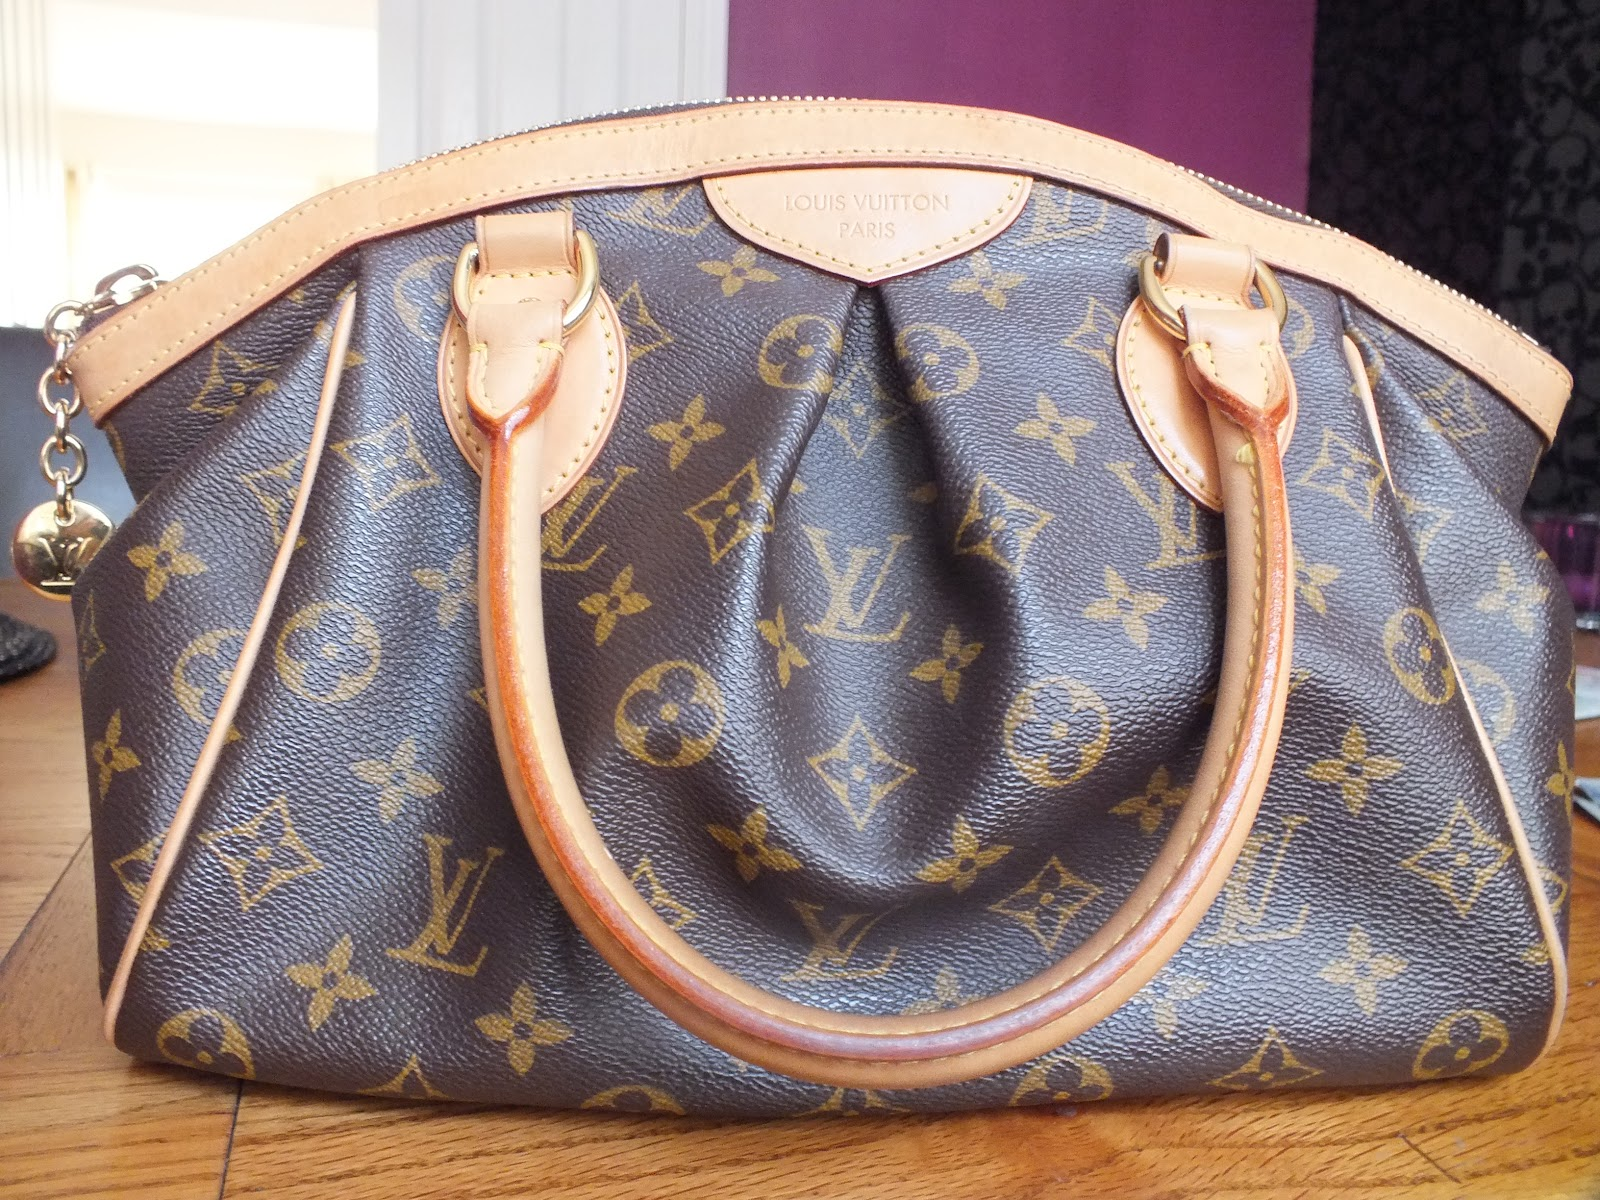 This Is My Absolute Favourite Hand Bag It Was First Lv And Holds A Dear Place In Heart I Am Lucky To Have Few Bags Now